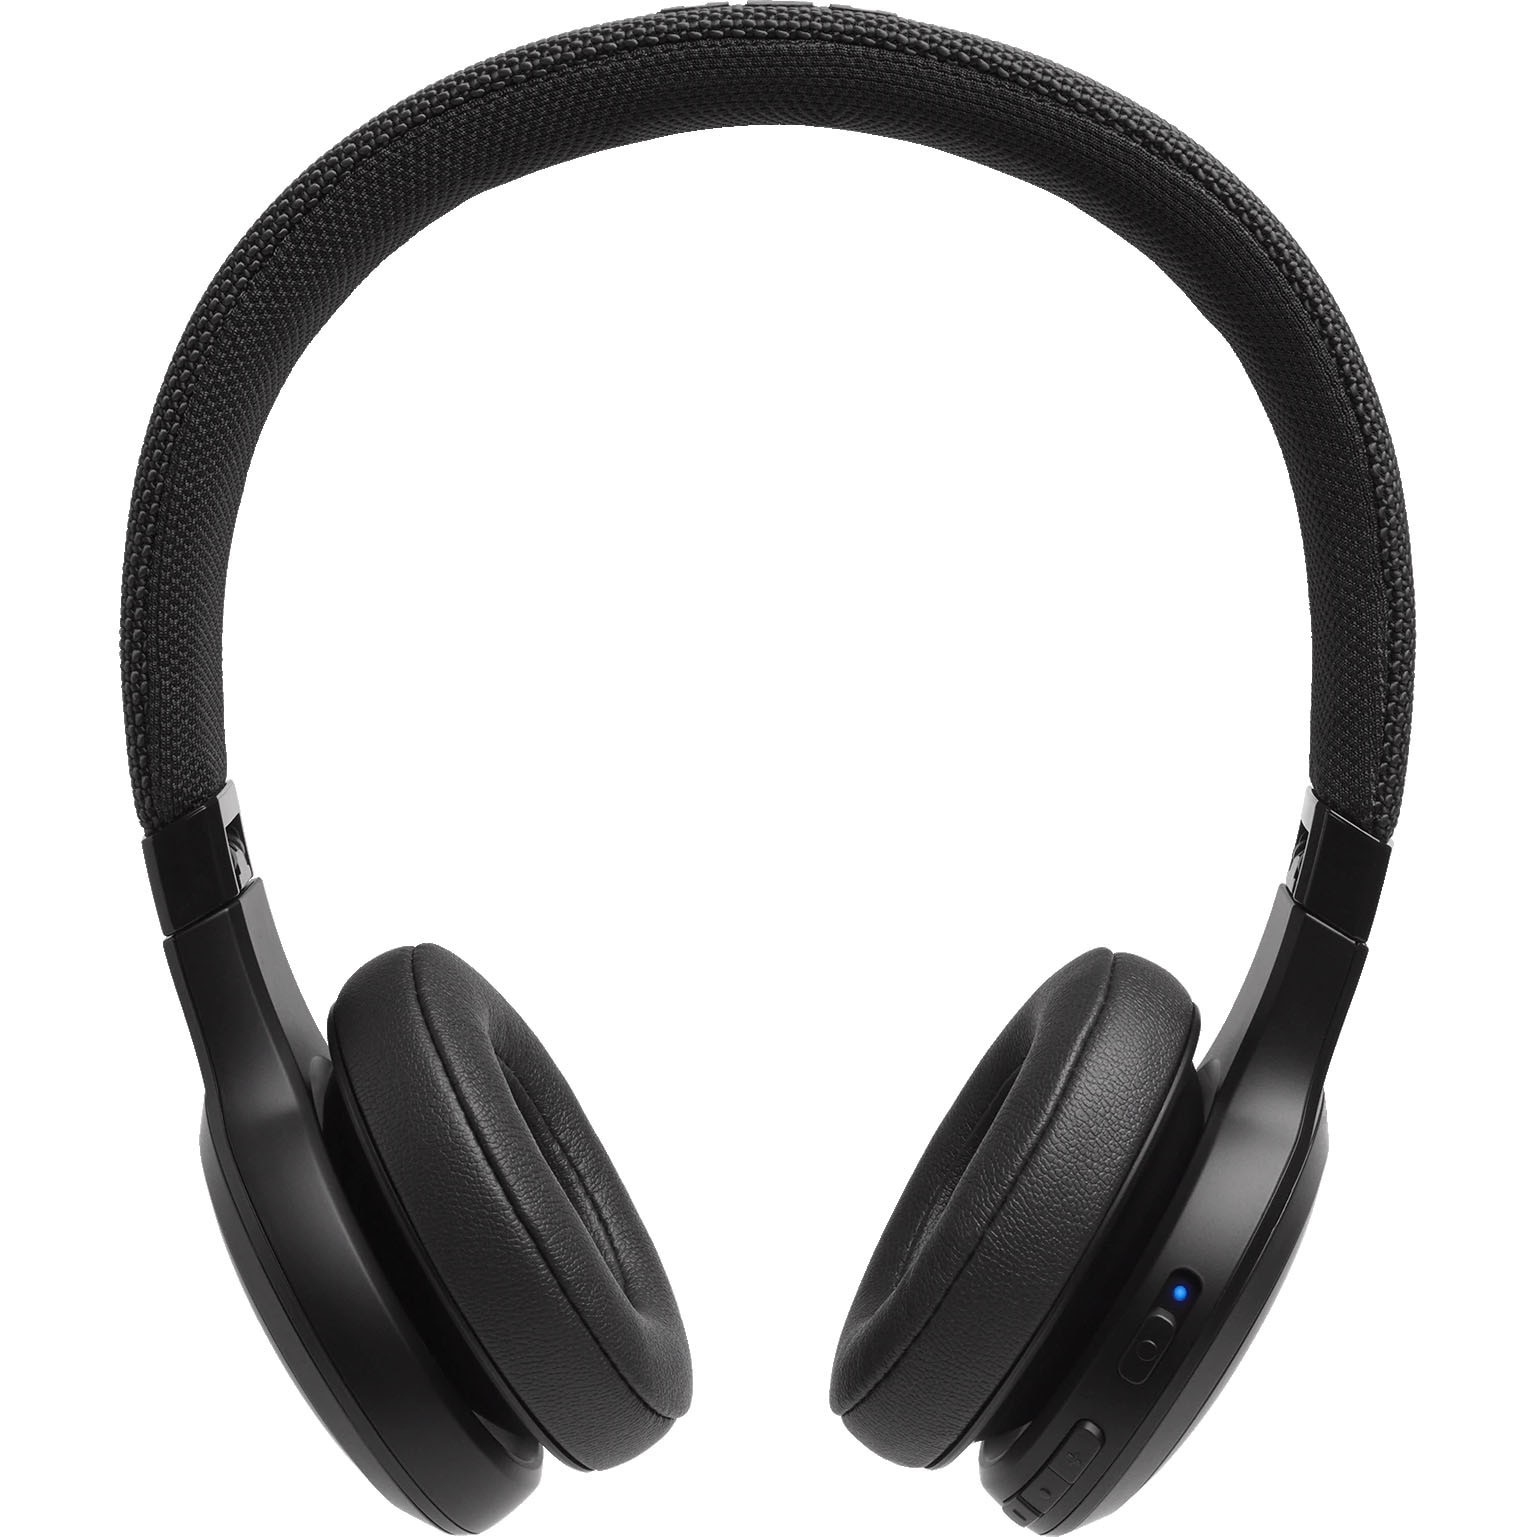 Fotografie Casti On-Ear JBL LIVE400BT, JBL Signature Sound, Voice Assistant, Bluetooth Wireless, TalkThru Technology, Hands-free calls, 24h playback, negru